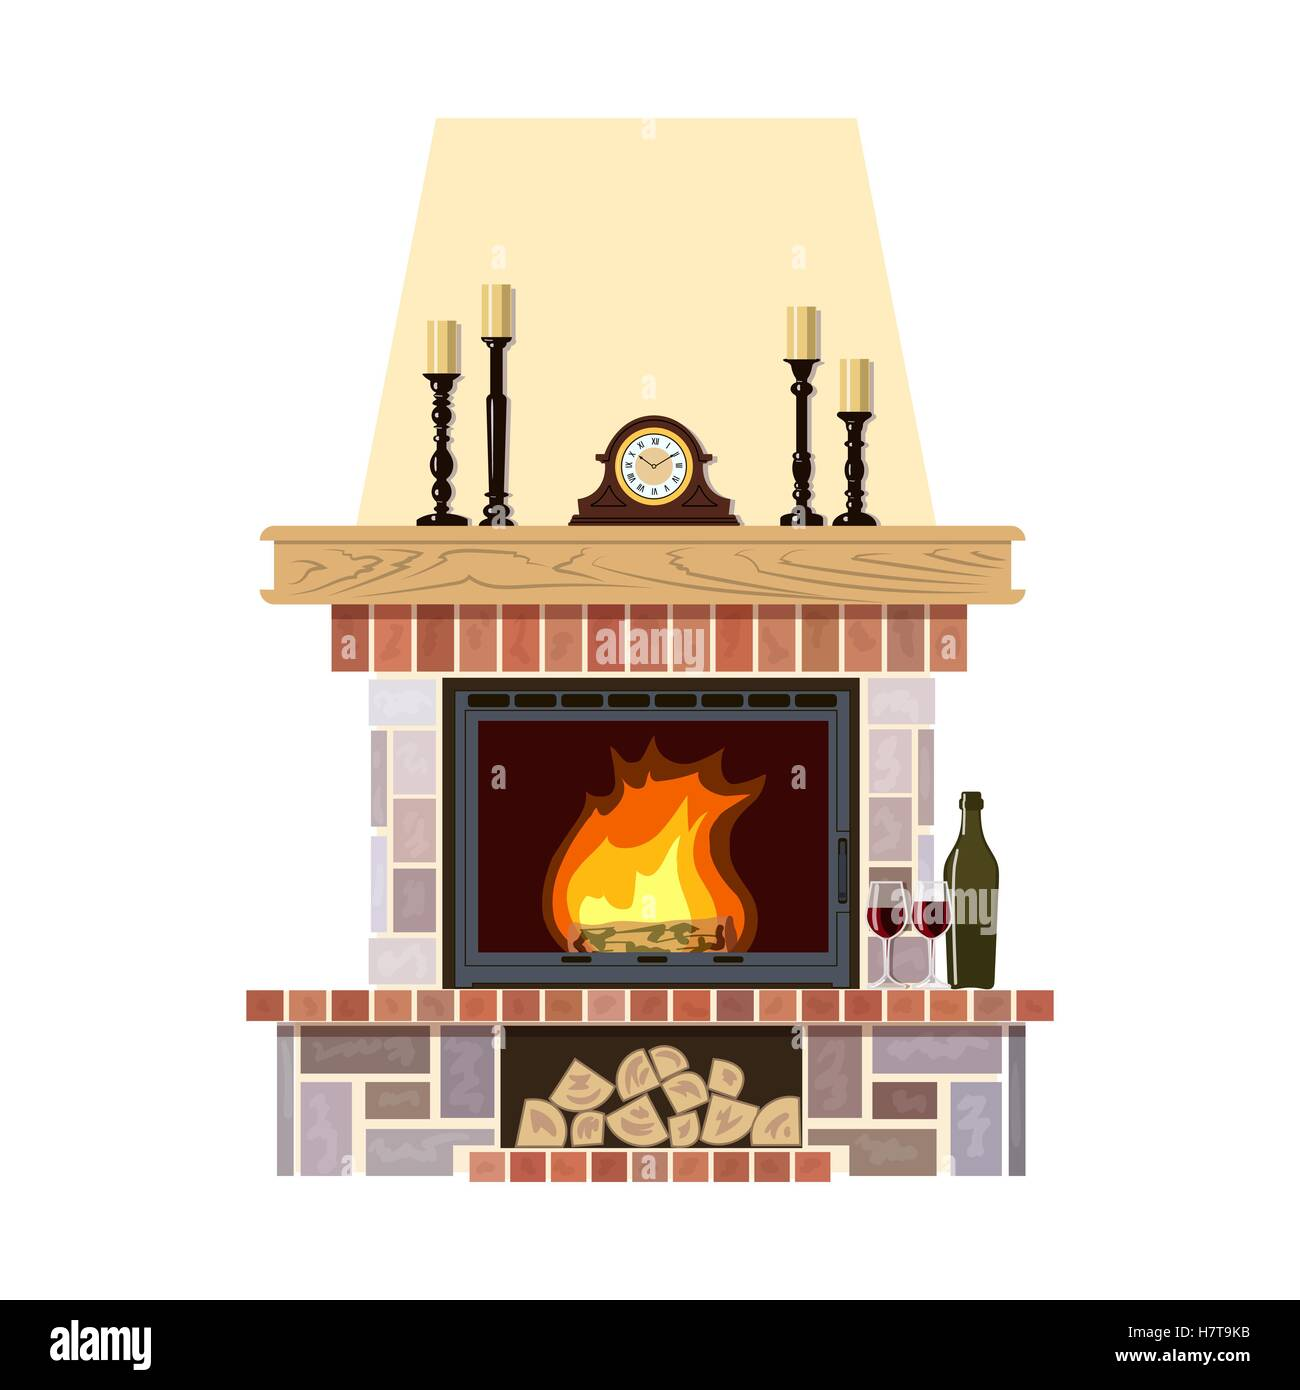 Flaming fireplace in the parlor. Cute and cozy burning hearth with clock, wine bottle and glasses, candlesticks, - Stock Vector